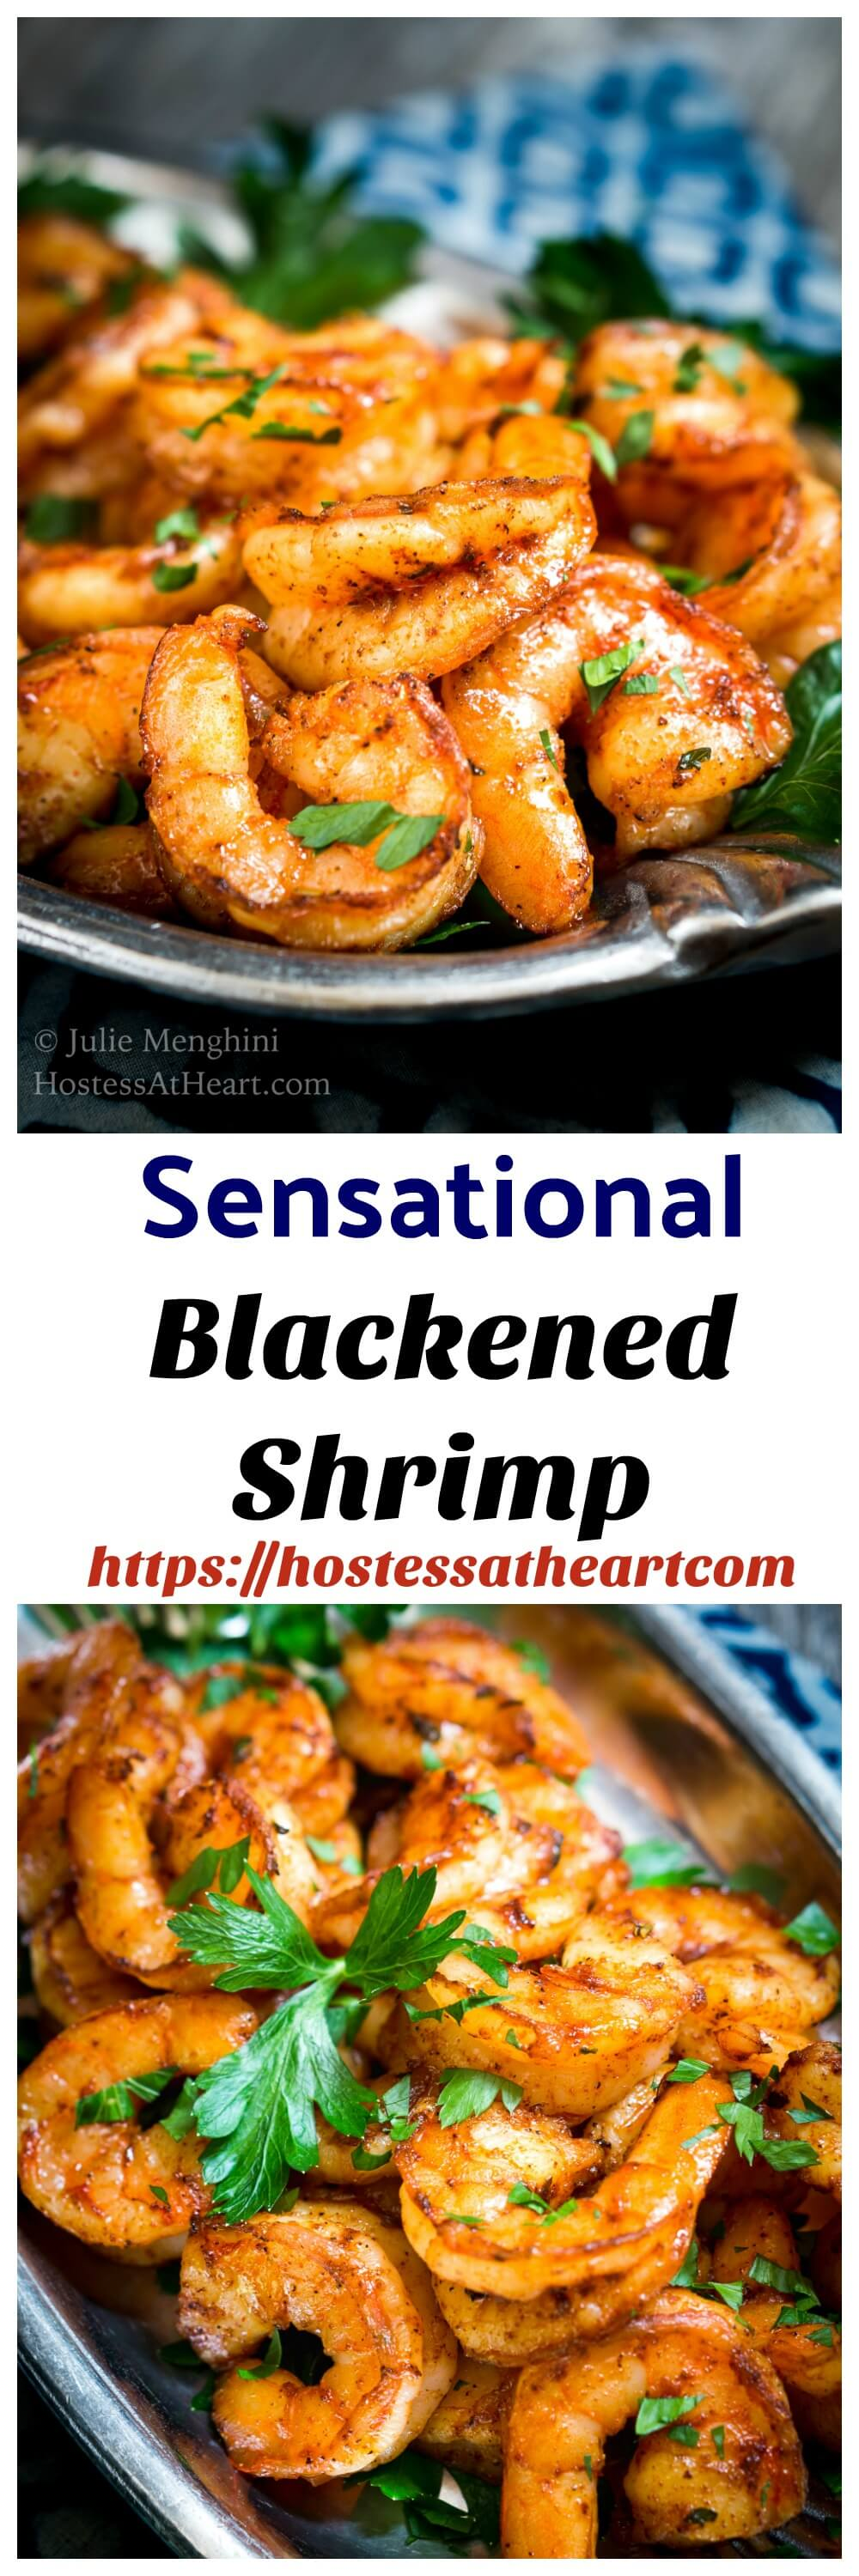 Sensational Baked Blackened Shrimp Recipe is delicious and so versatile. It makes a great appetizer or is perfect for tacos or on pasta. Best of all, it takes 10 minutes from start to finish! #recipe #appetizer #healthyrecipe #seafood #shrimp | Easy Recipes | Healthy recipes | Easy Appetizers | Shrimp recipes